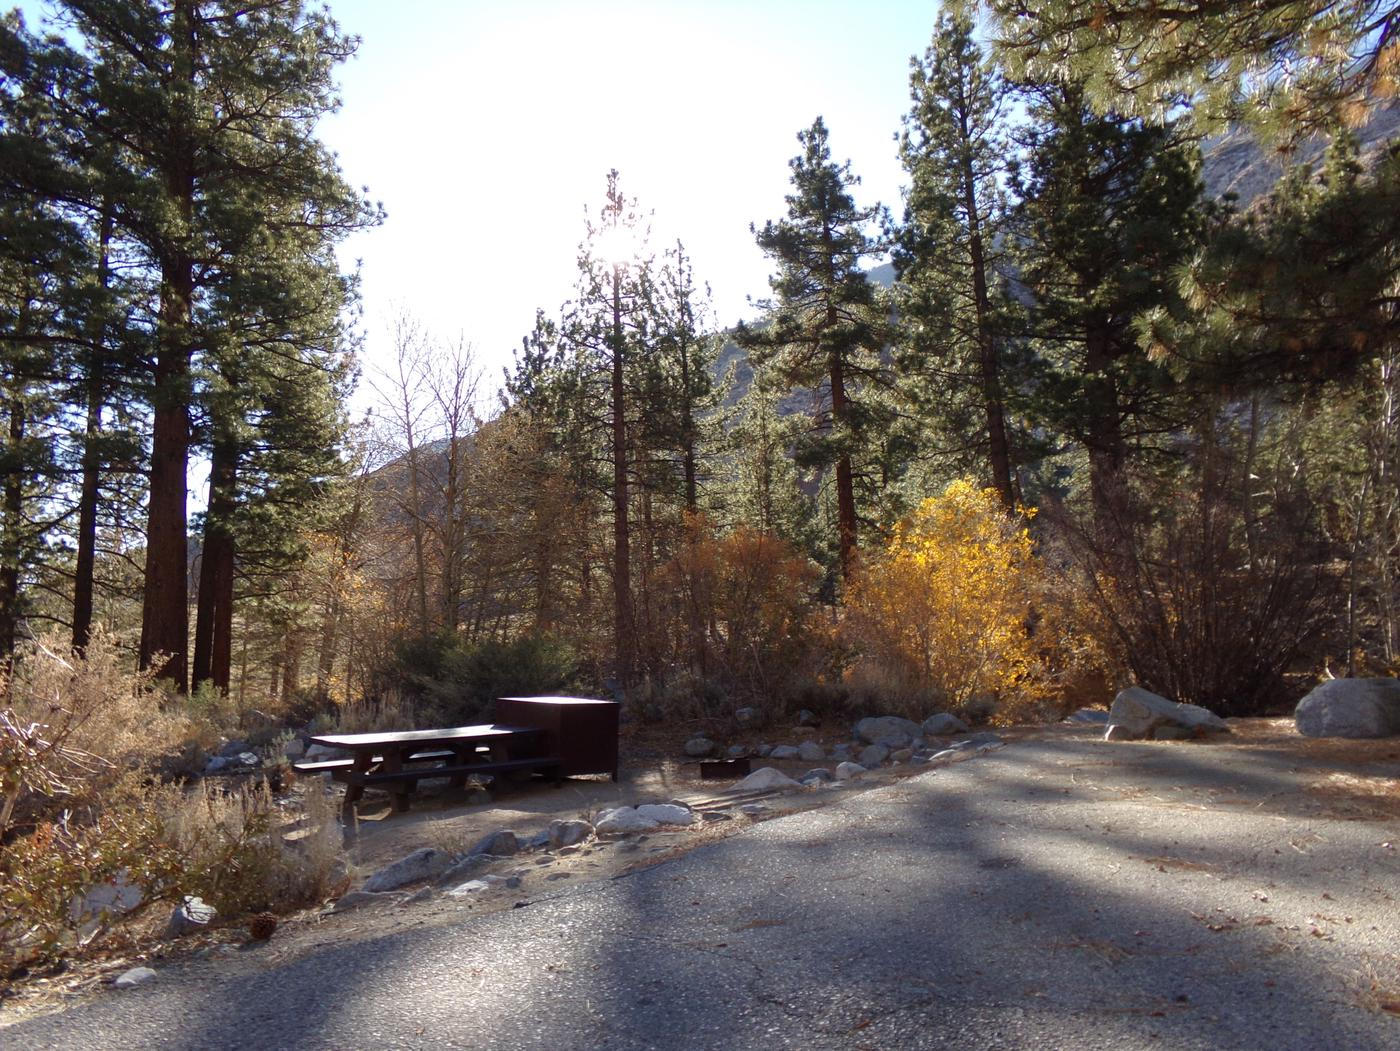 Upper Sage Flat Campground site #06 featuring picnic table, food storage, and fire pit with mountain views.